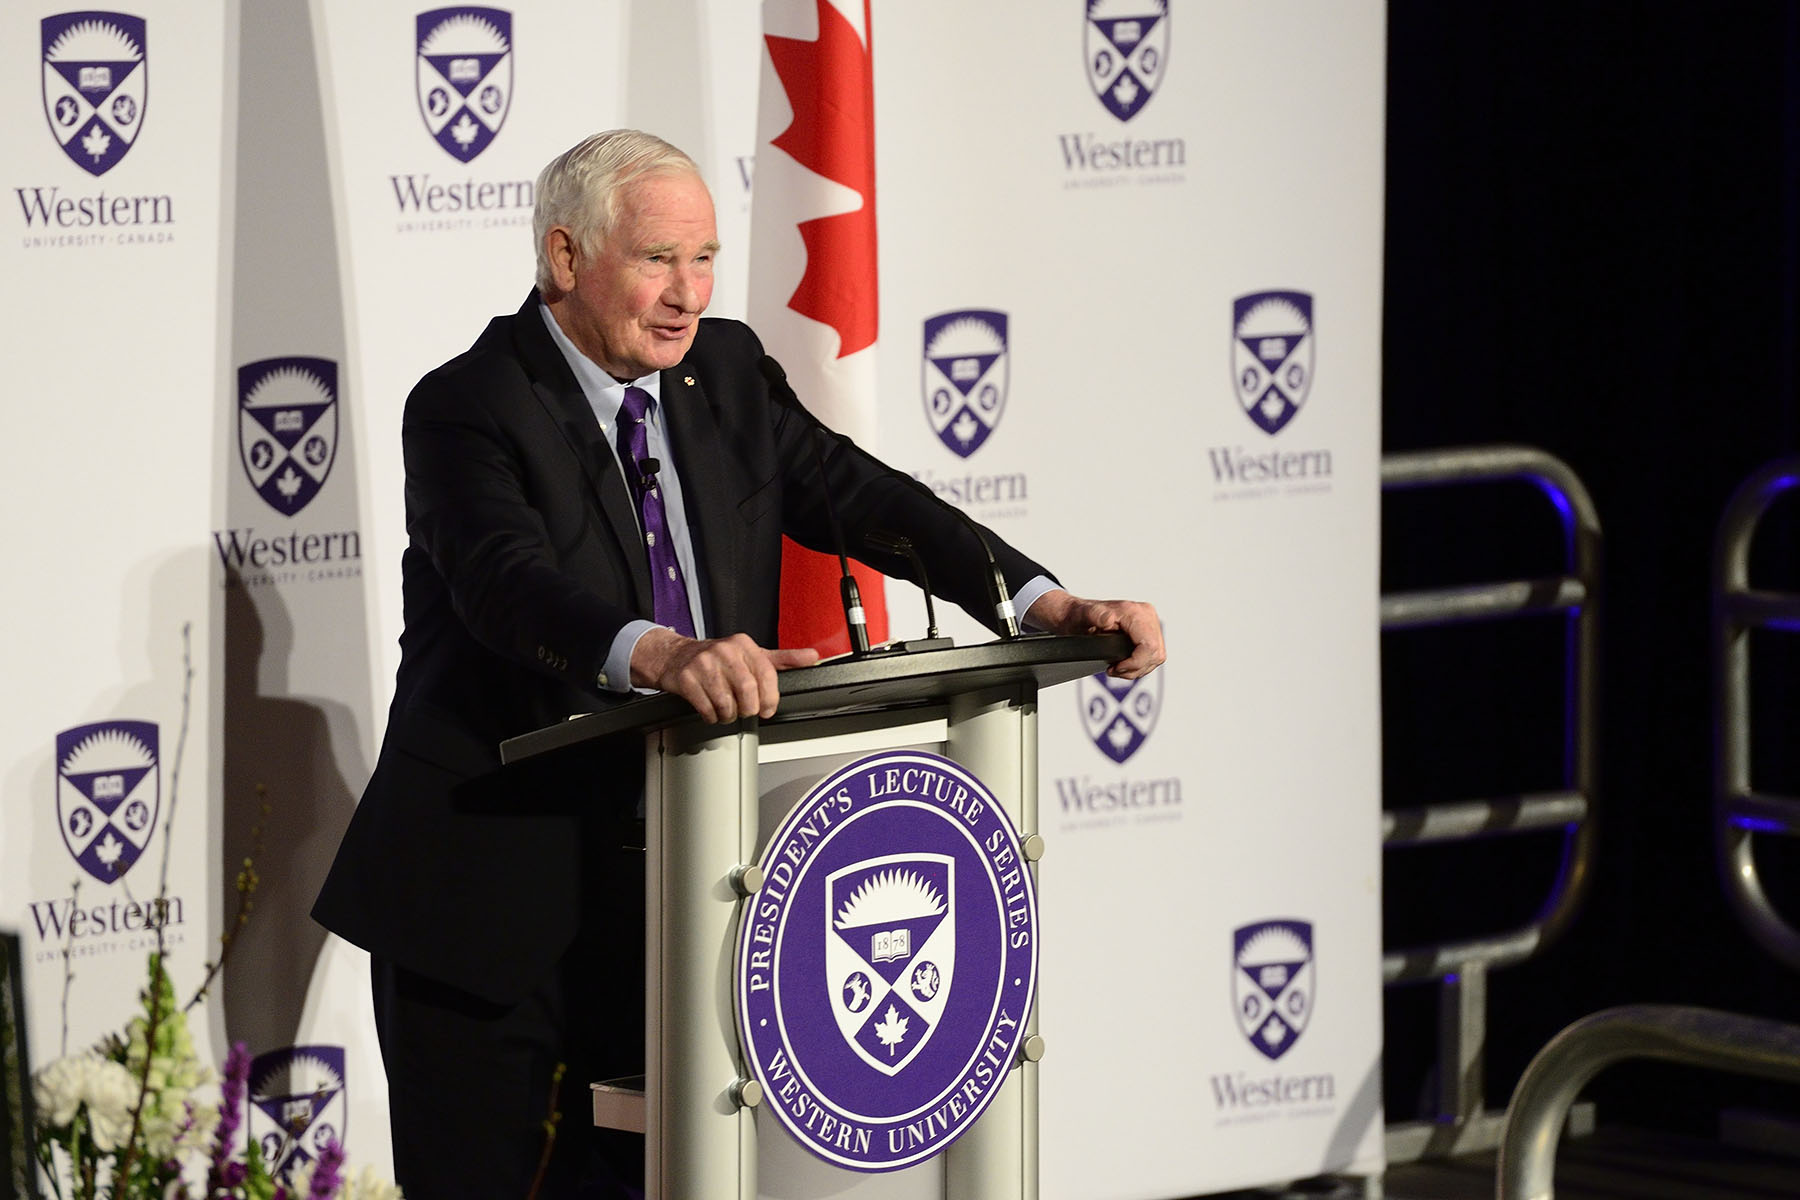 """Whether you're in business or law or education or government or media, think about trust, the glue that holds us together, and make trust building a central part of what you do, "" said the Governor General."